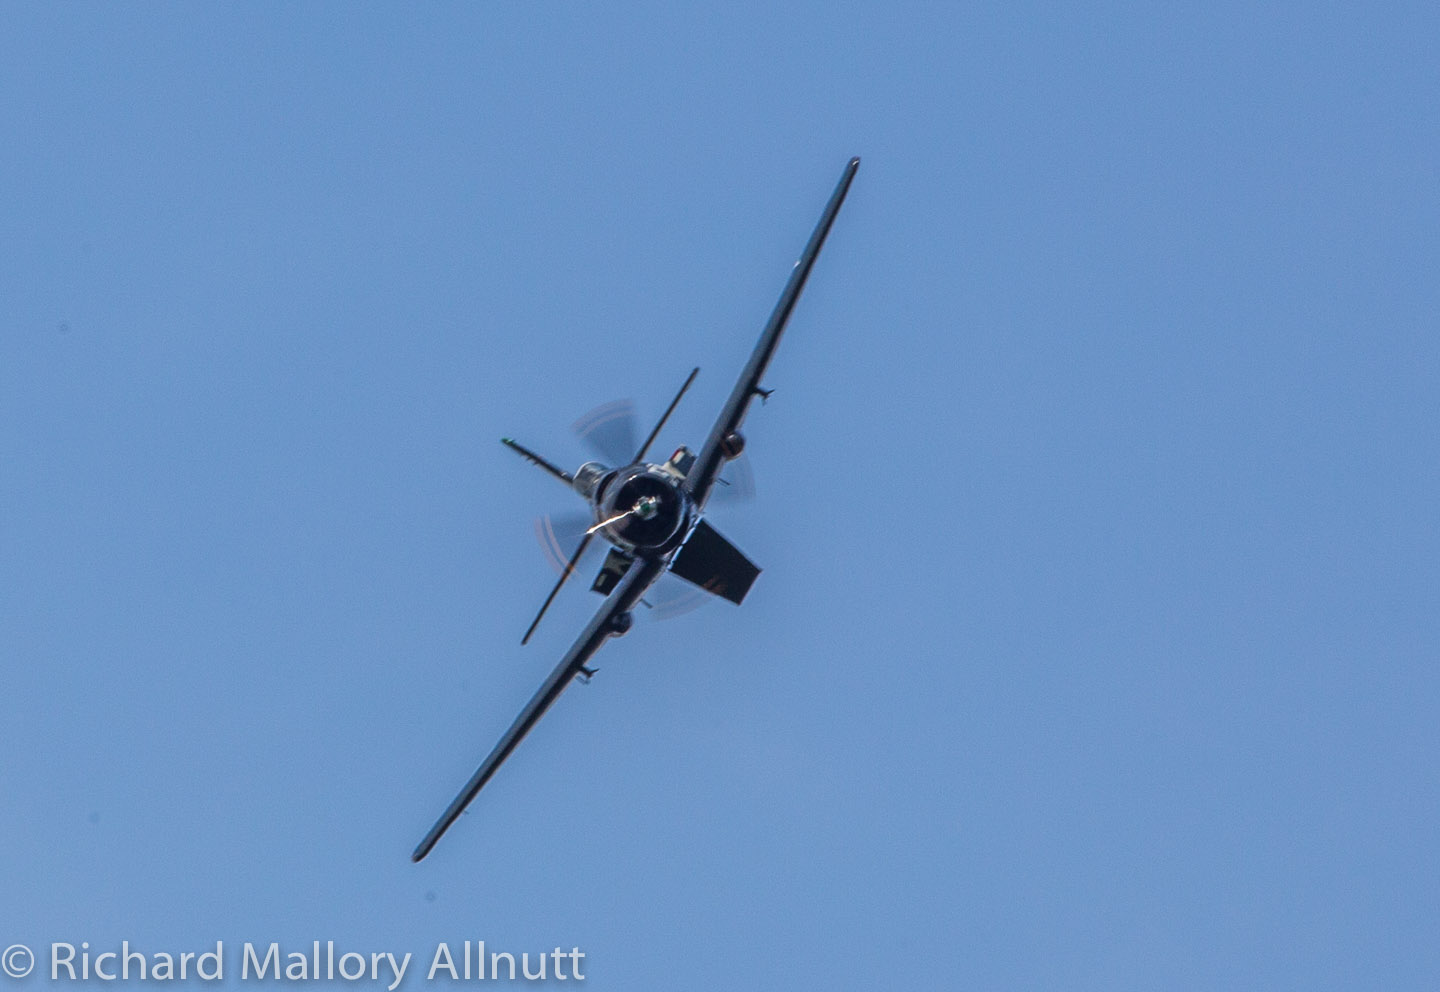 _C8A9514 - Richard Mallory Allnutt photo - Warbirds Over the Beach - Military Aviation Museum - Pungo, VA - May 17, 2014